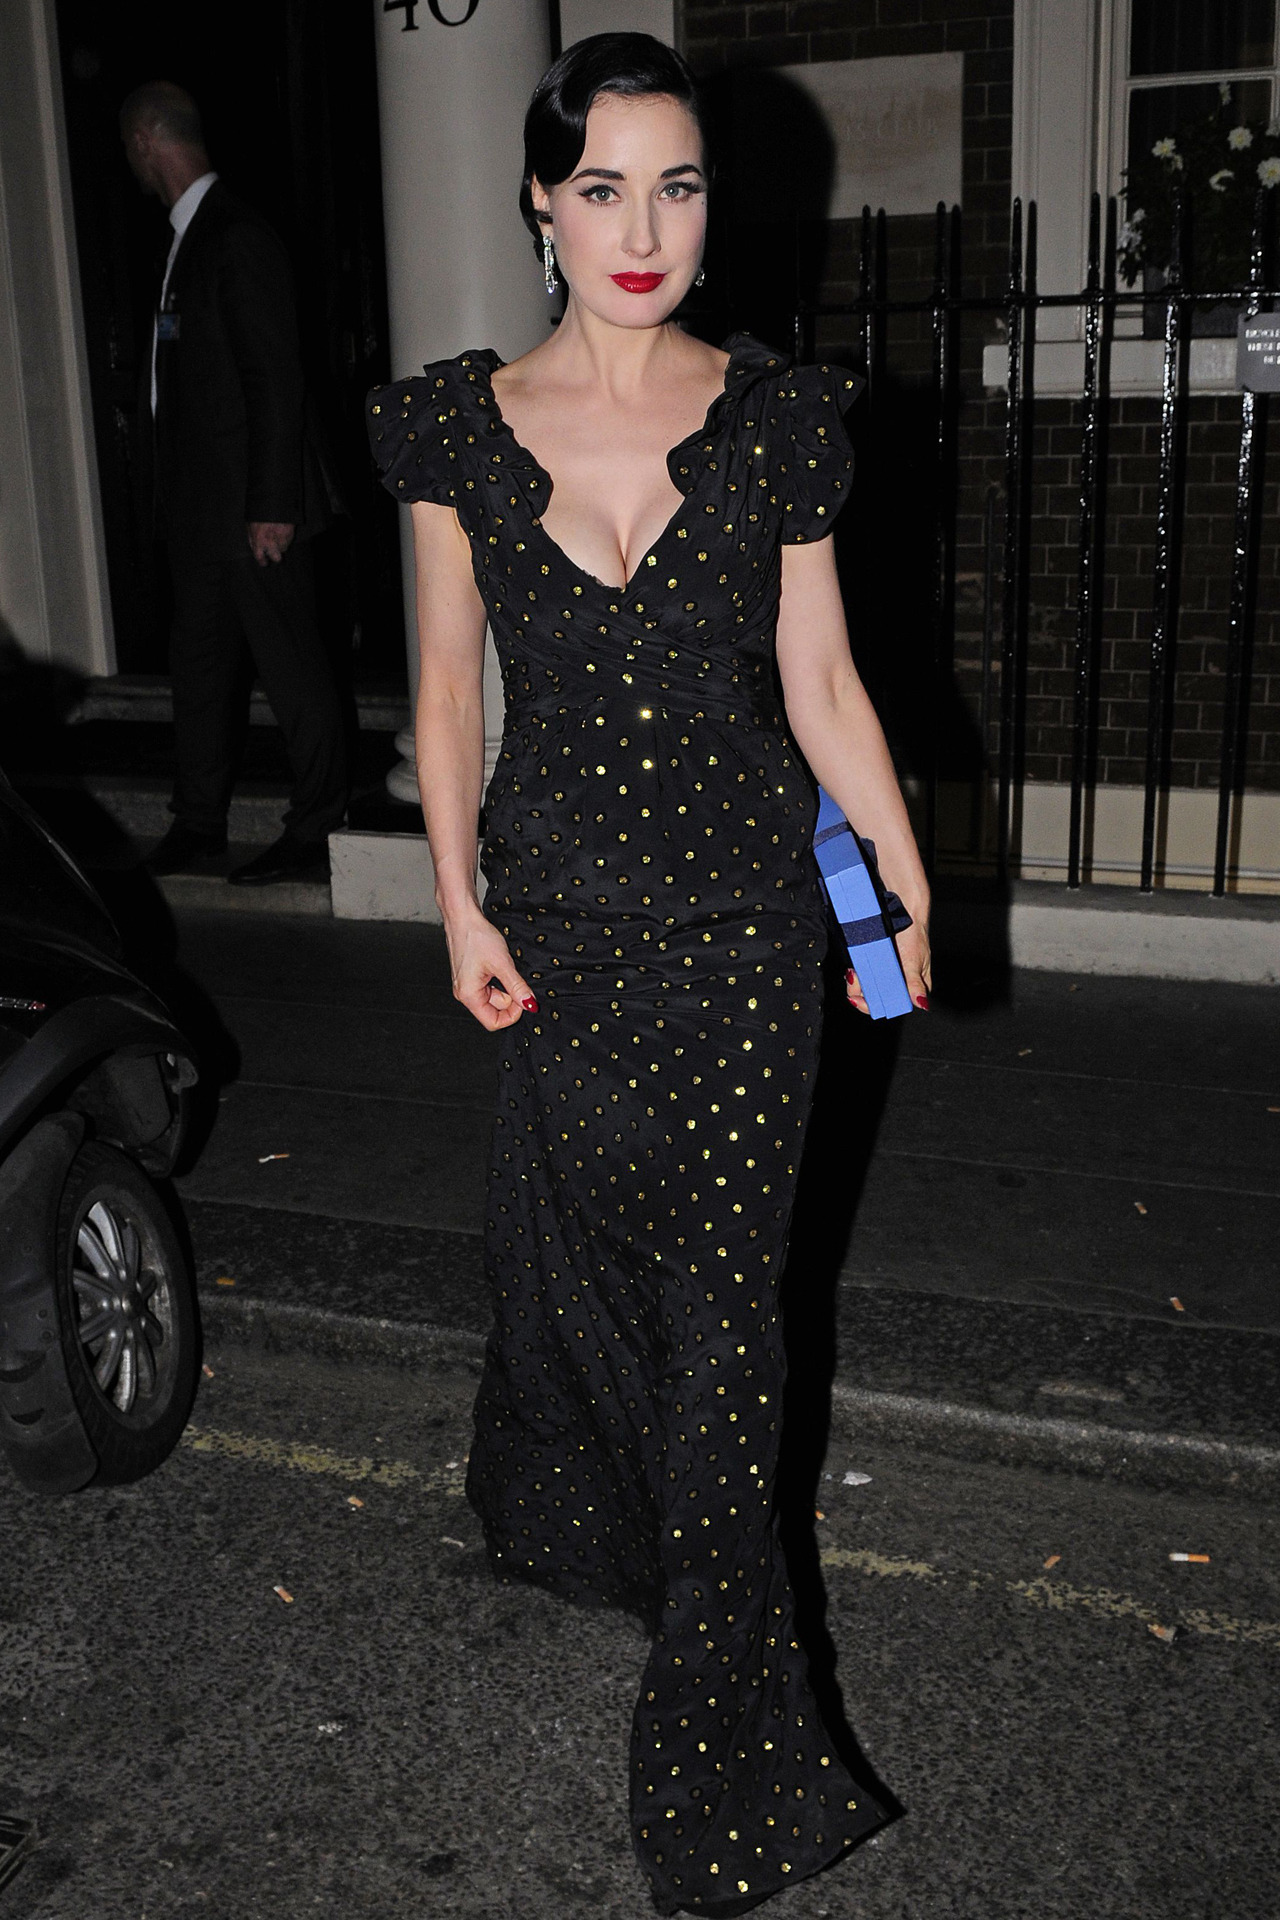 suicideblonde:  Dita Von Teese leaving the Arts Club in London, September 17th